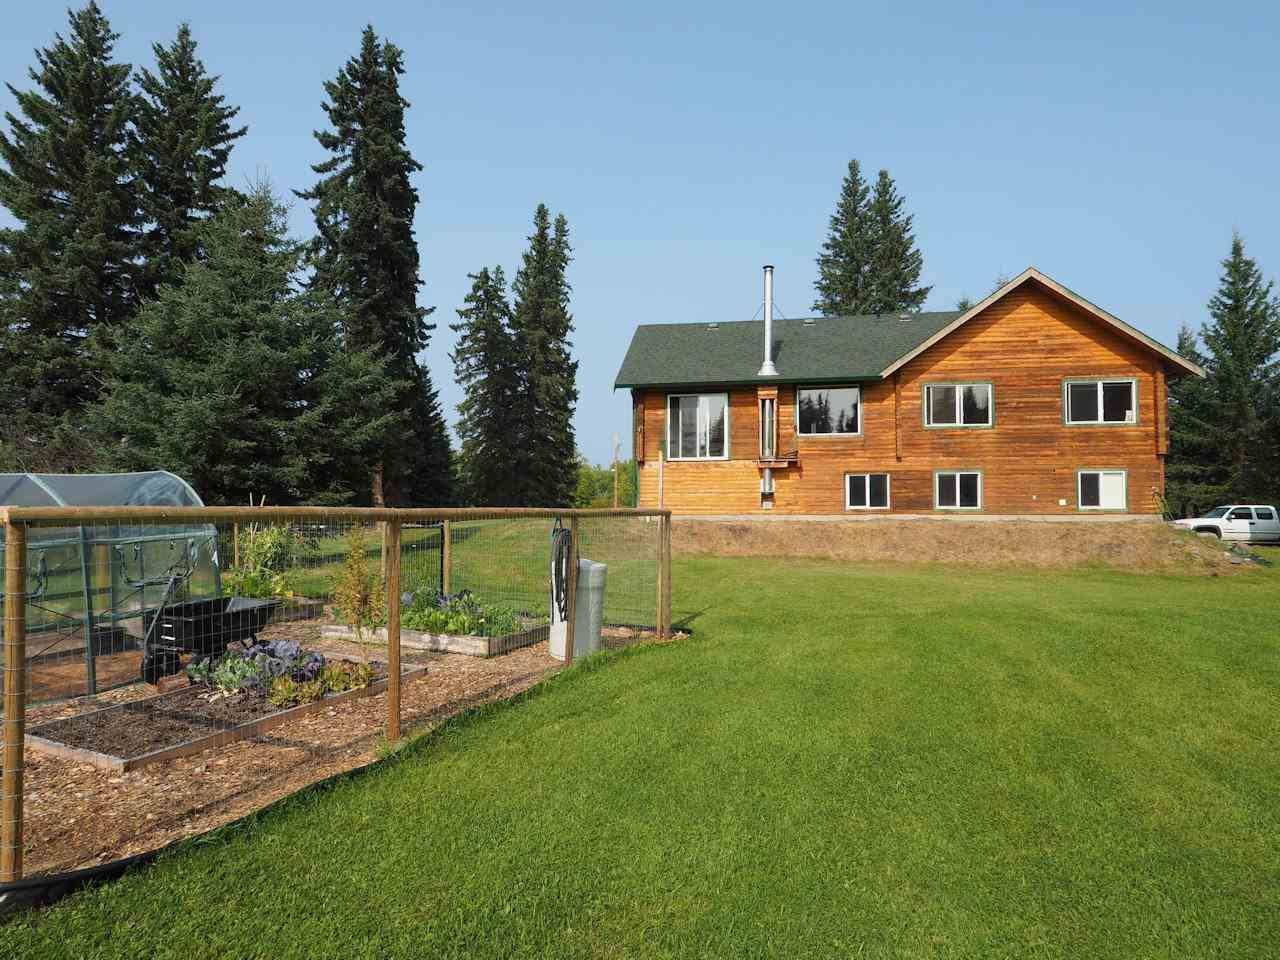 Main Photo: 6524 W FAWN Road: Horse Lake House for sale (100 Mile House (Zone 10))  : MLS®# R2499768